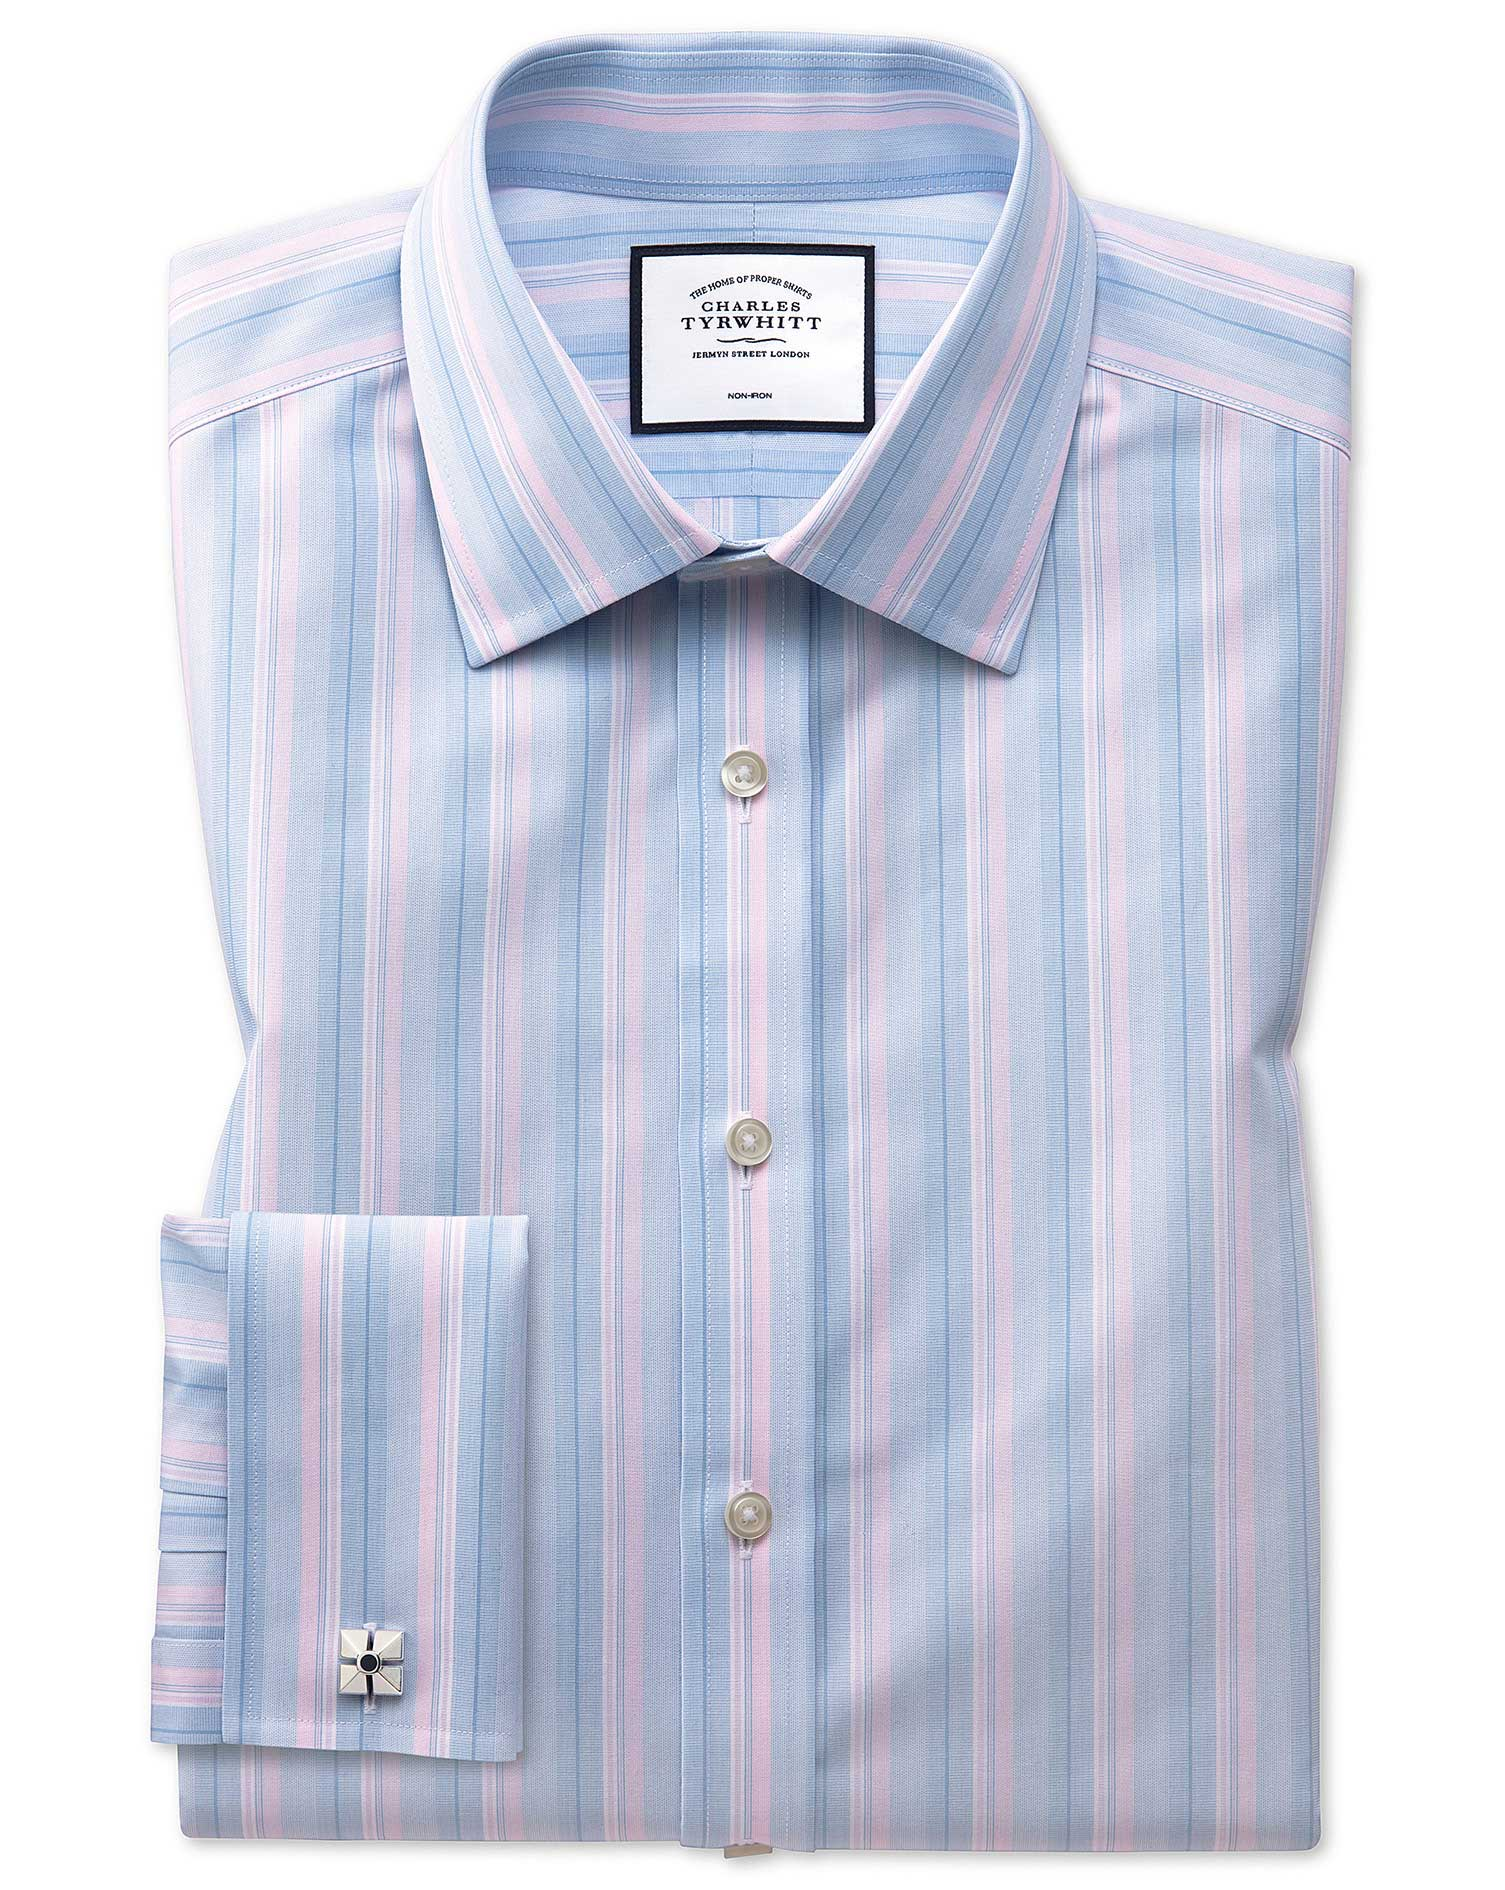 Extra Slim Fit Non-Iron Pink and Blue Multi Stripe Cotton Formal Shirt Double Cuff Size 16.5/36 by C